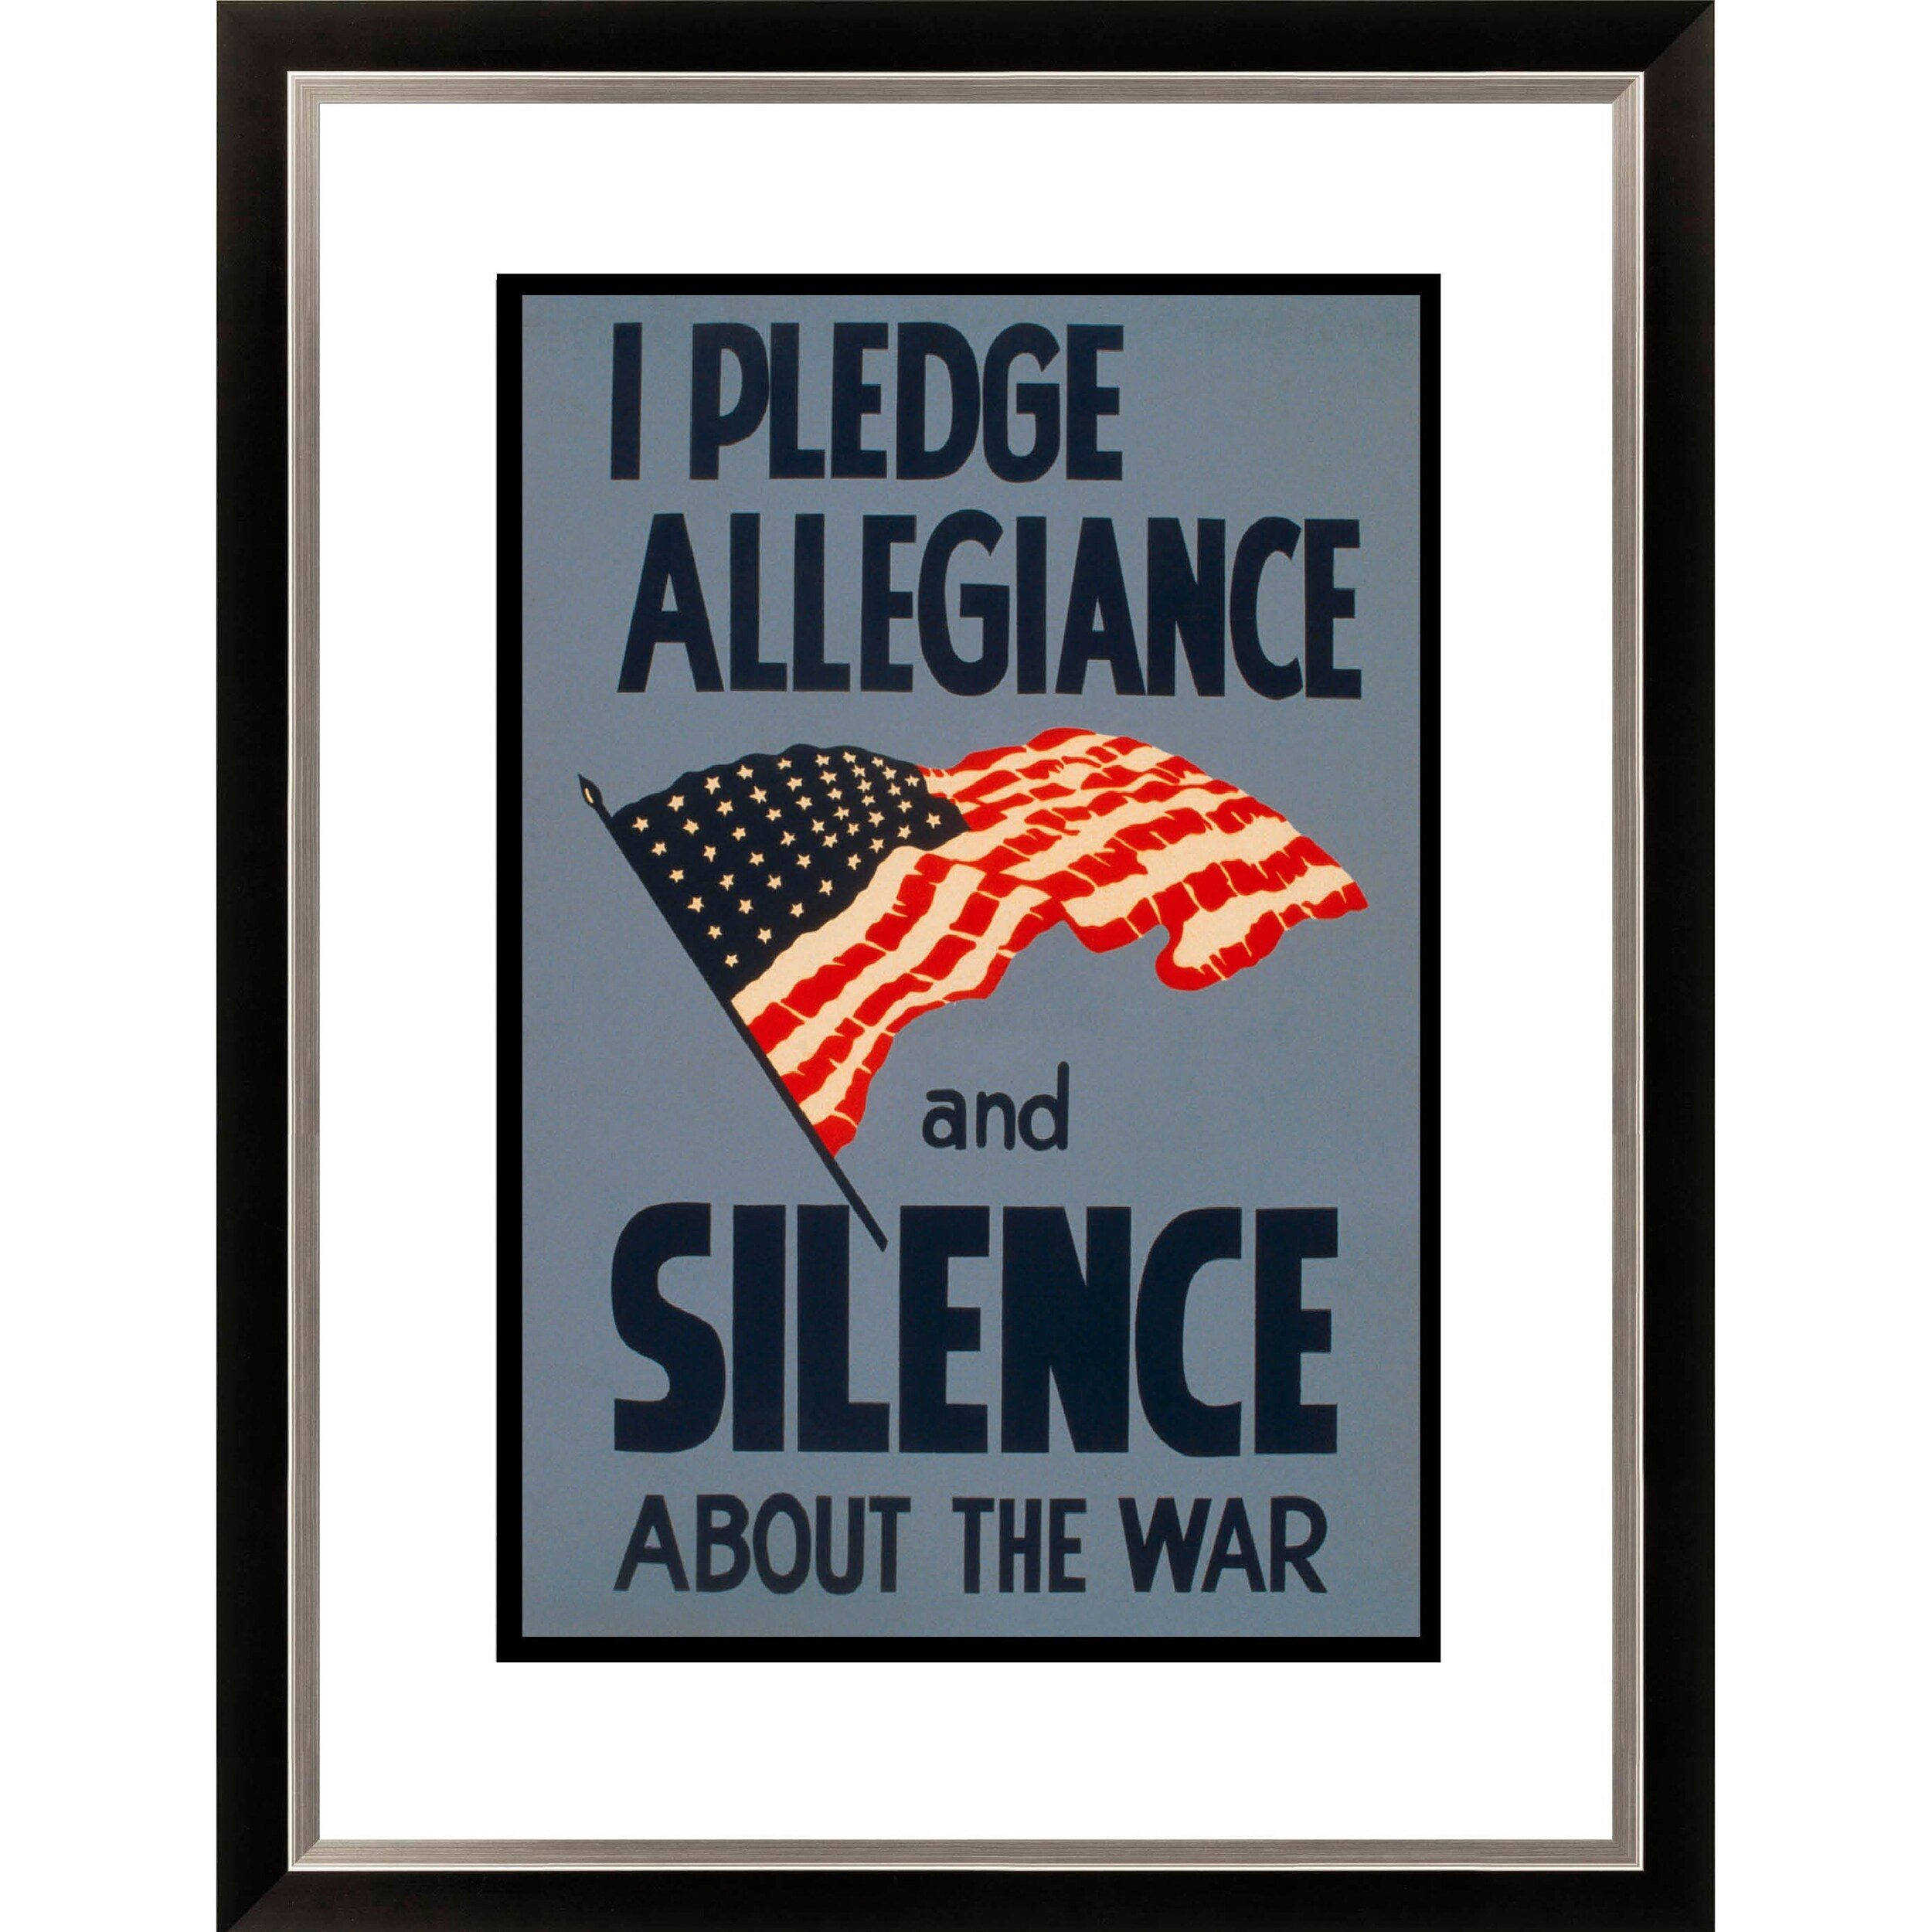 Gallery Direct I Pledge Allegiance and Silence About the War Framed Limited Edition Giclee Art